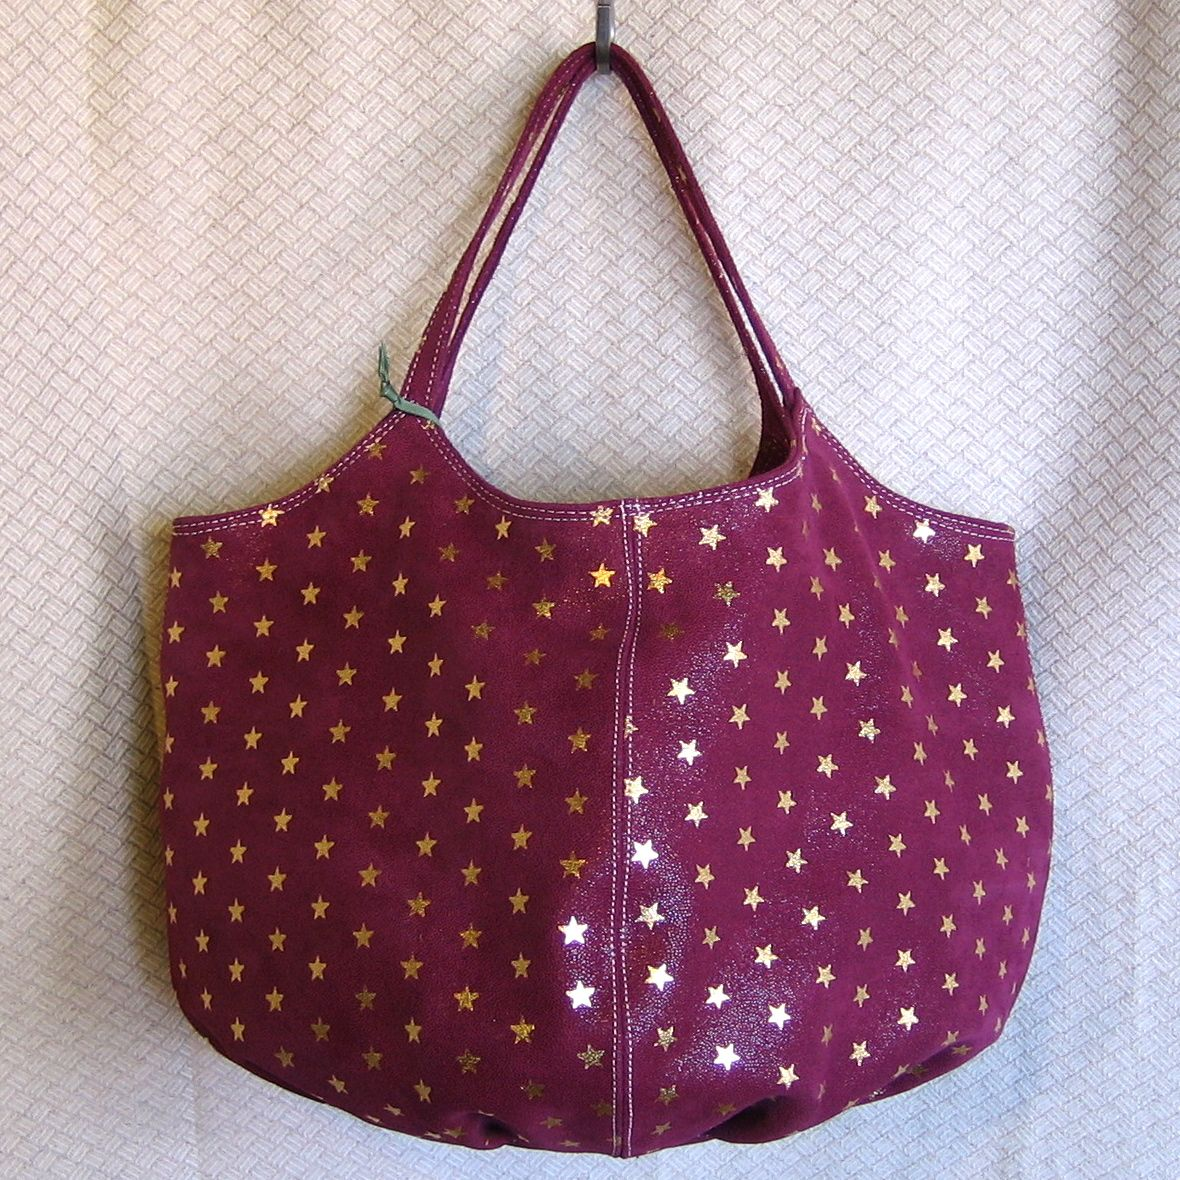 Penelope Chilvers starry leather tote!